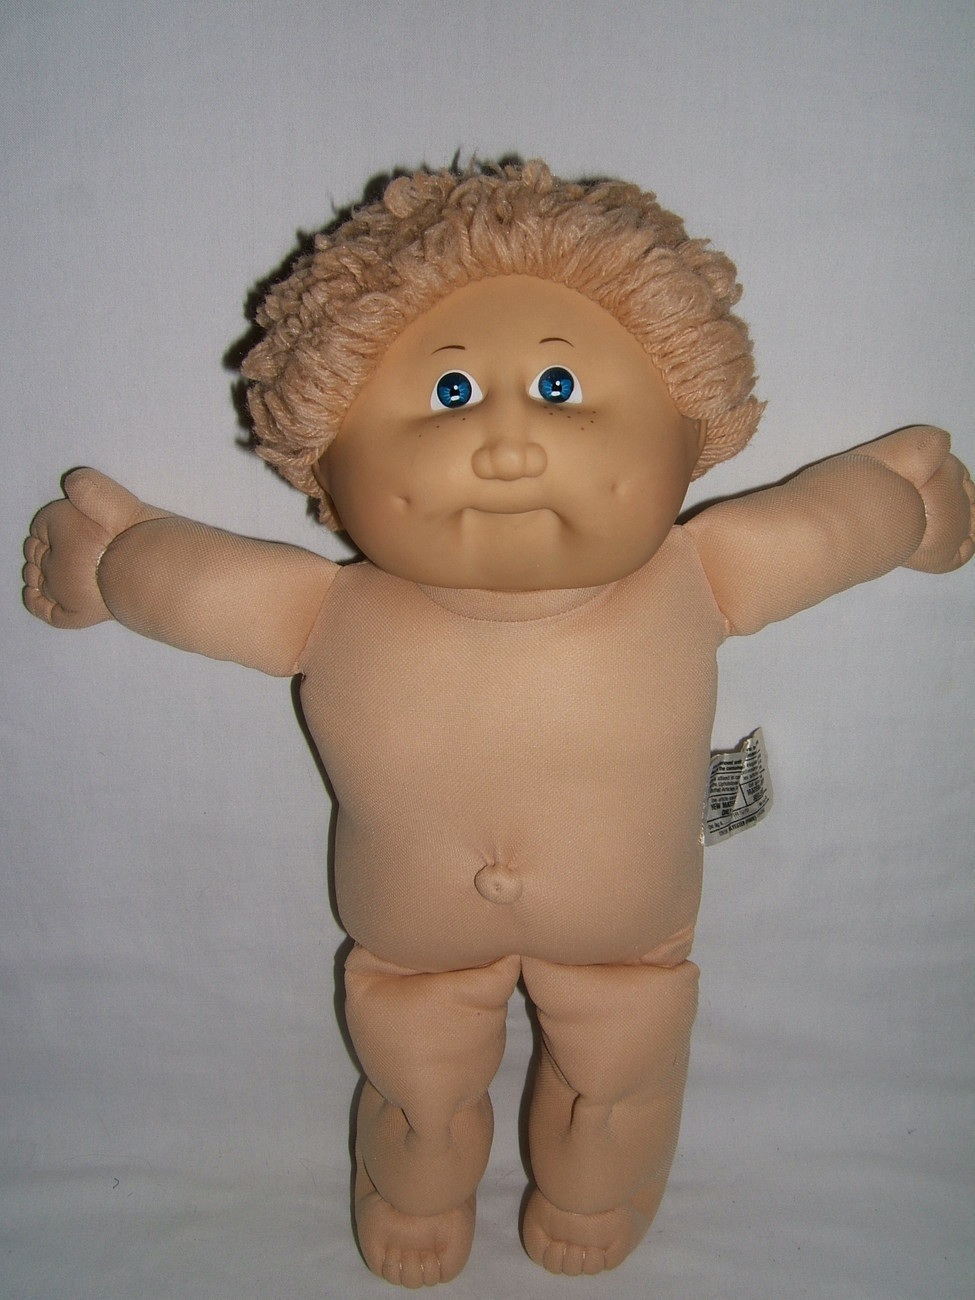 Vintage Cabbage Patch Dolls Beautiful Vintage Cabbage Patch Boy Doll Black Signature No Date Of Vintage Cabbage Patch Dolls Fresh Cabbage Patch Kids Vintage Doll Limited Edition 30th